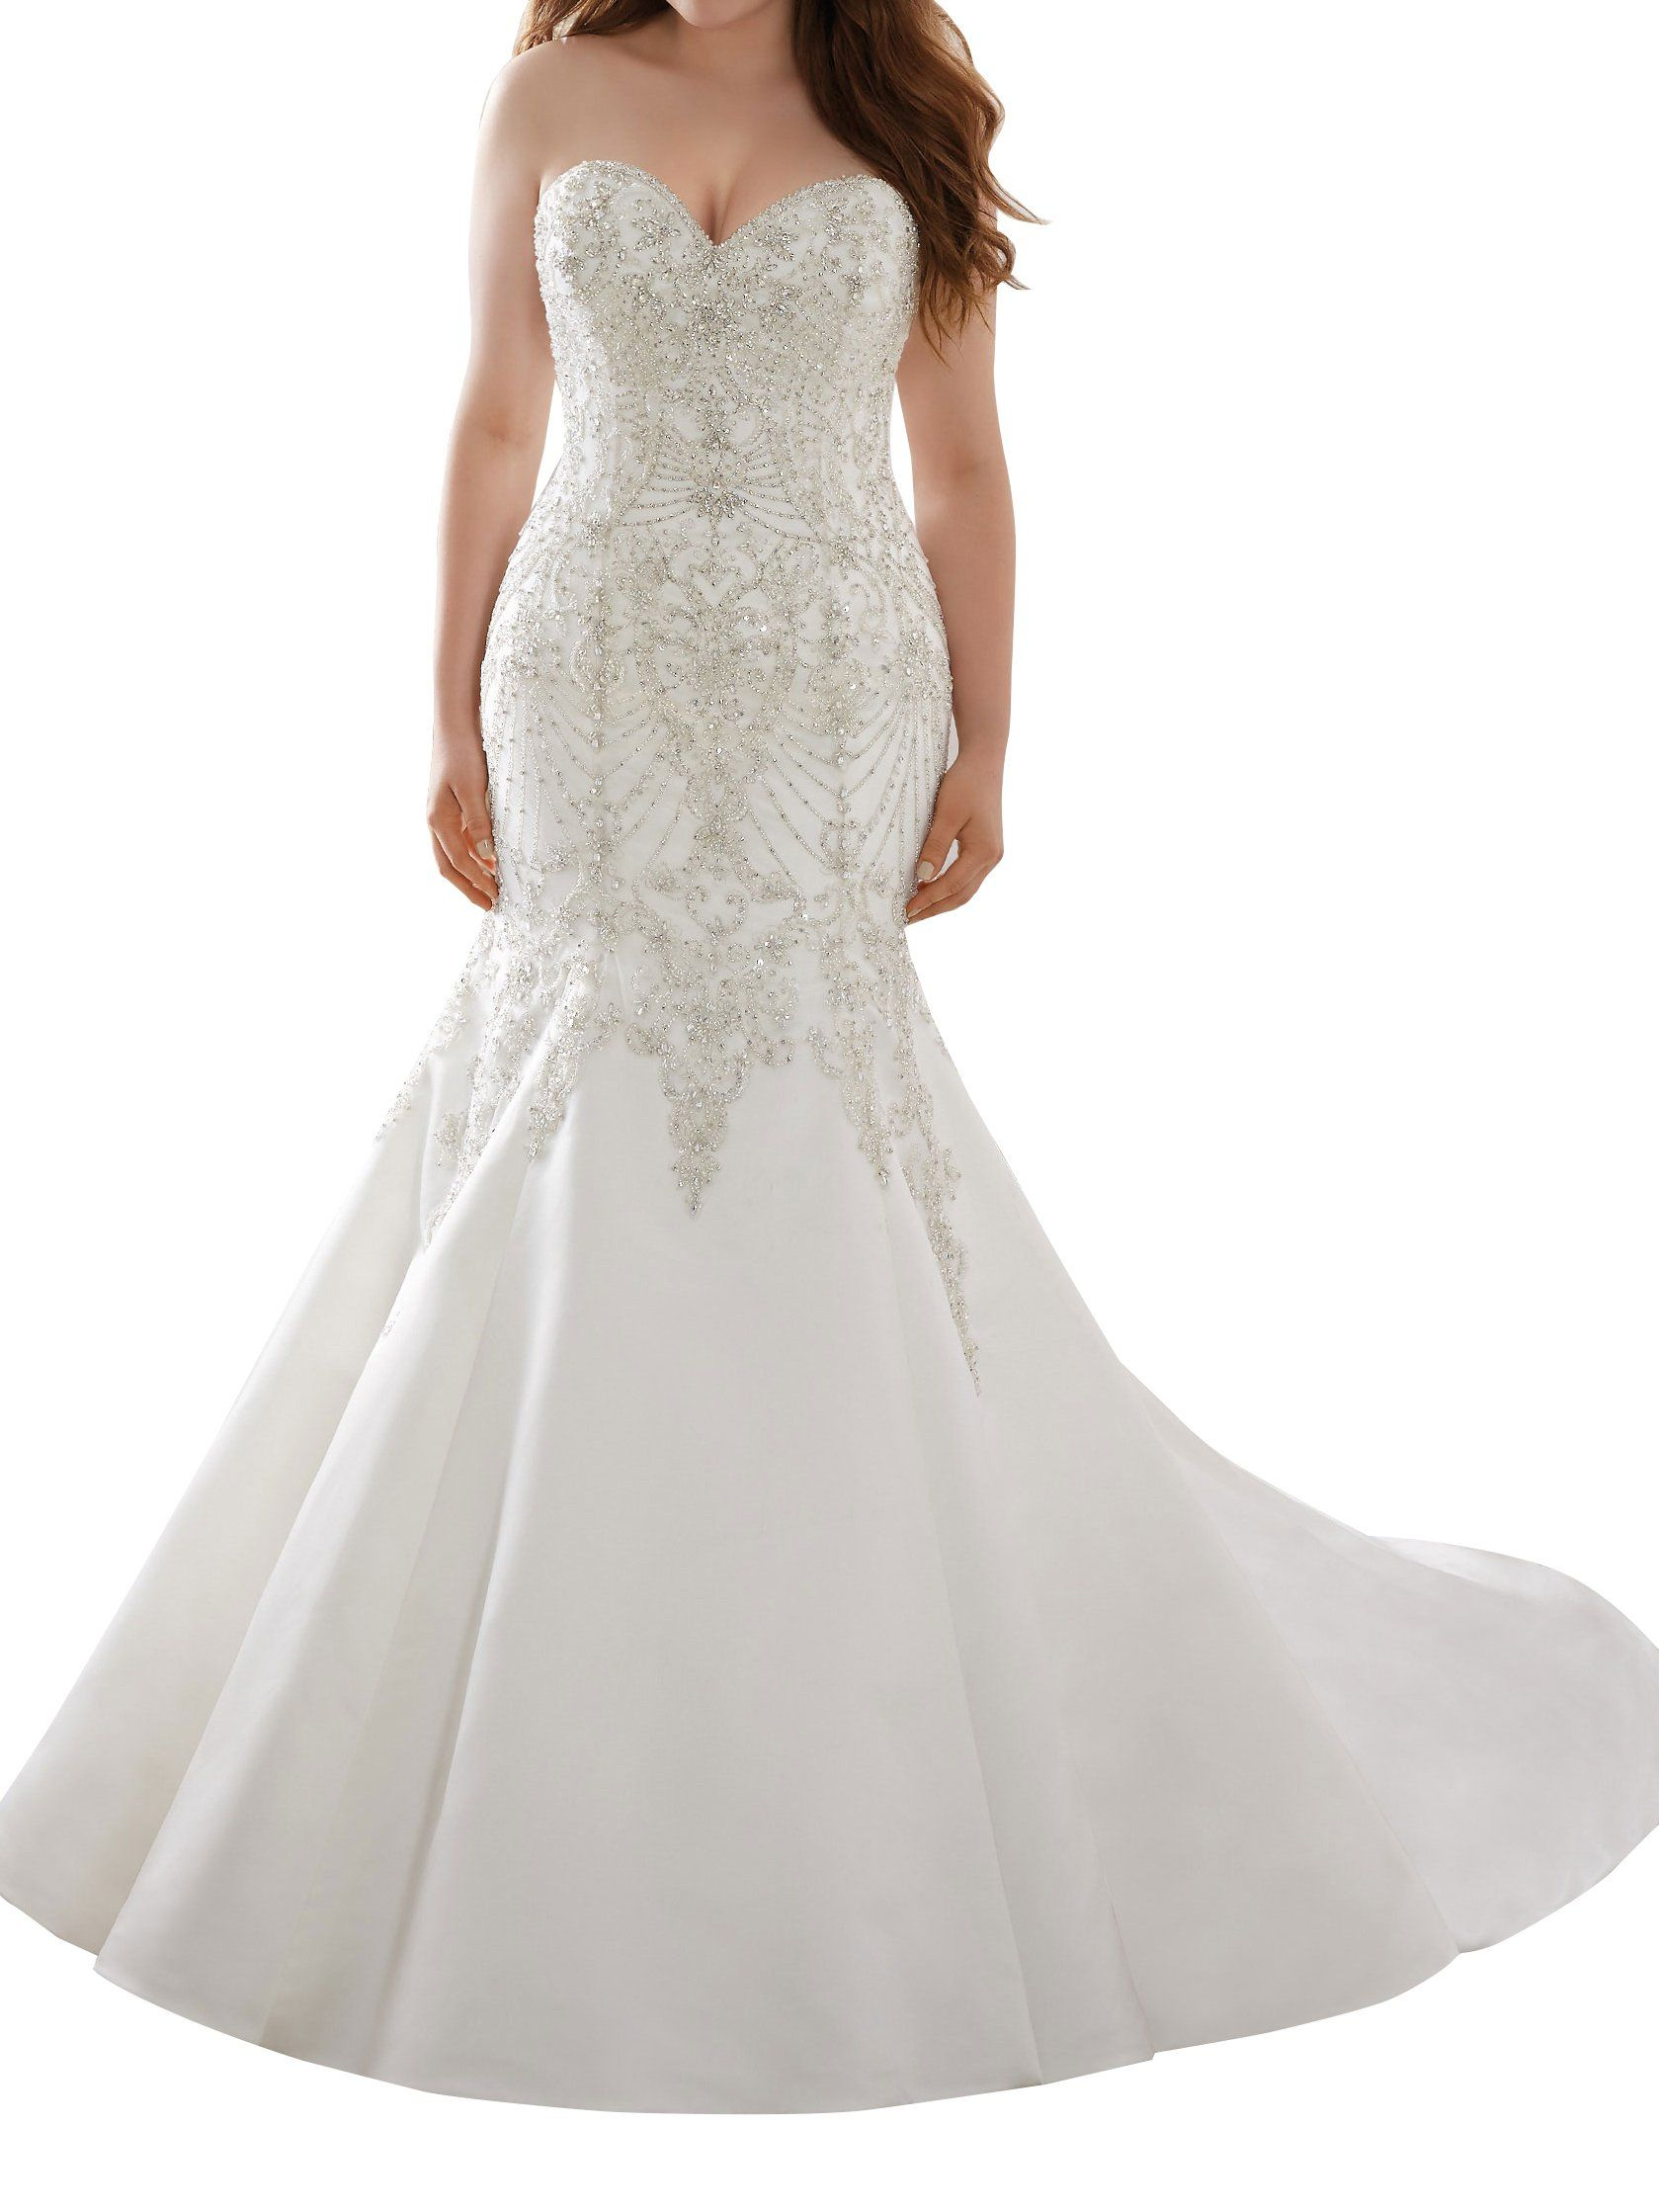 Mella ivory wedding dress for bride fit and flare sweetheart